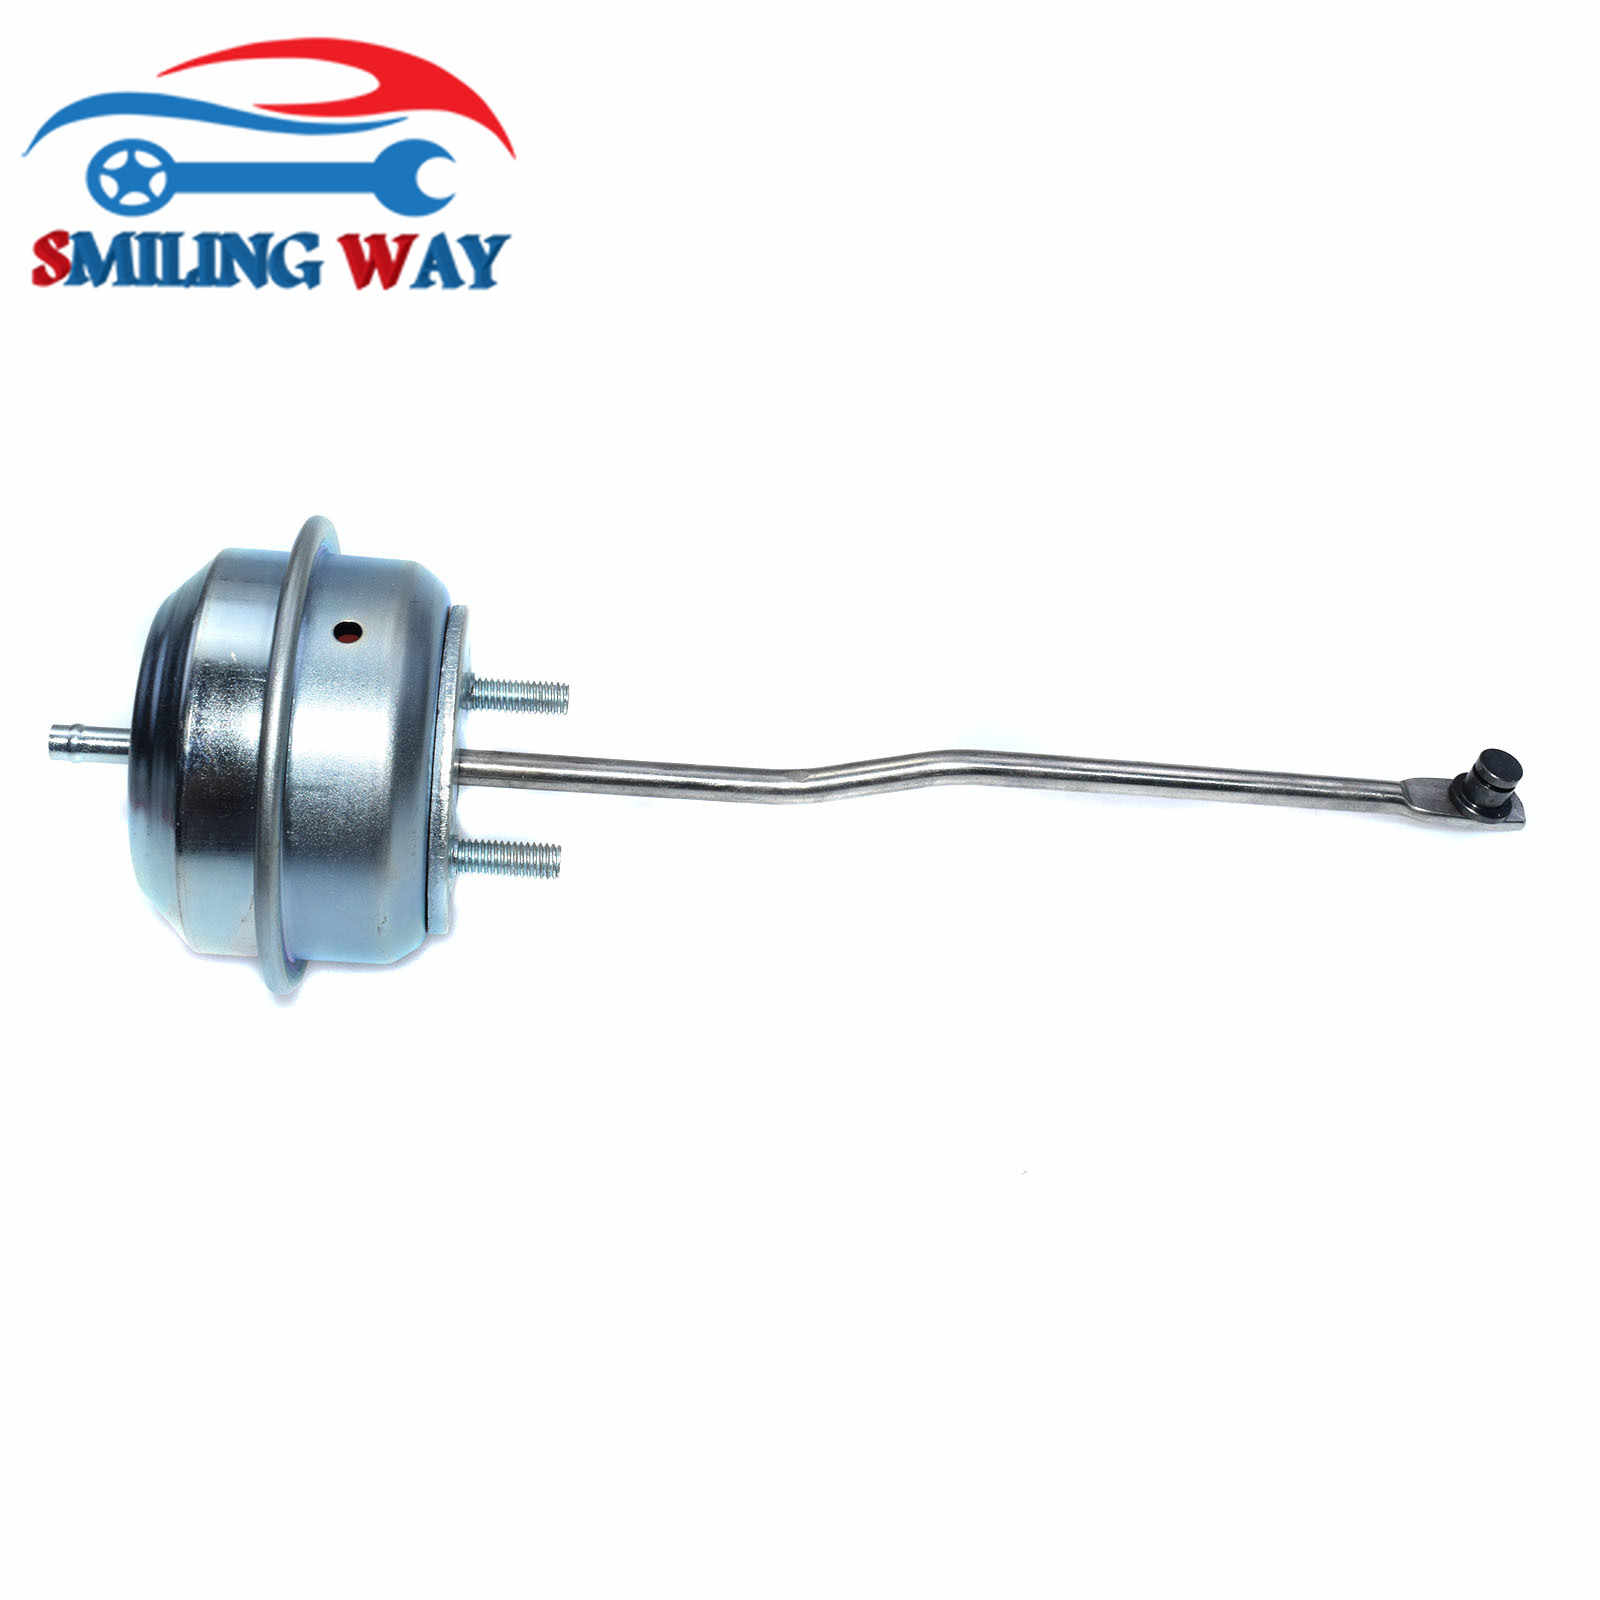 Furong Wastegate Turbocharger Turbo Actuator Fit for Mercedes-Benz W176 W246 W242 CIA C117 X117 GLA X156 2700900080 2700900980 2700902280 Color : Silver